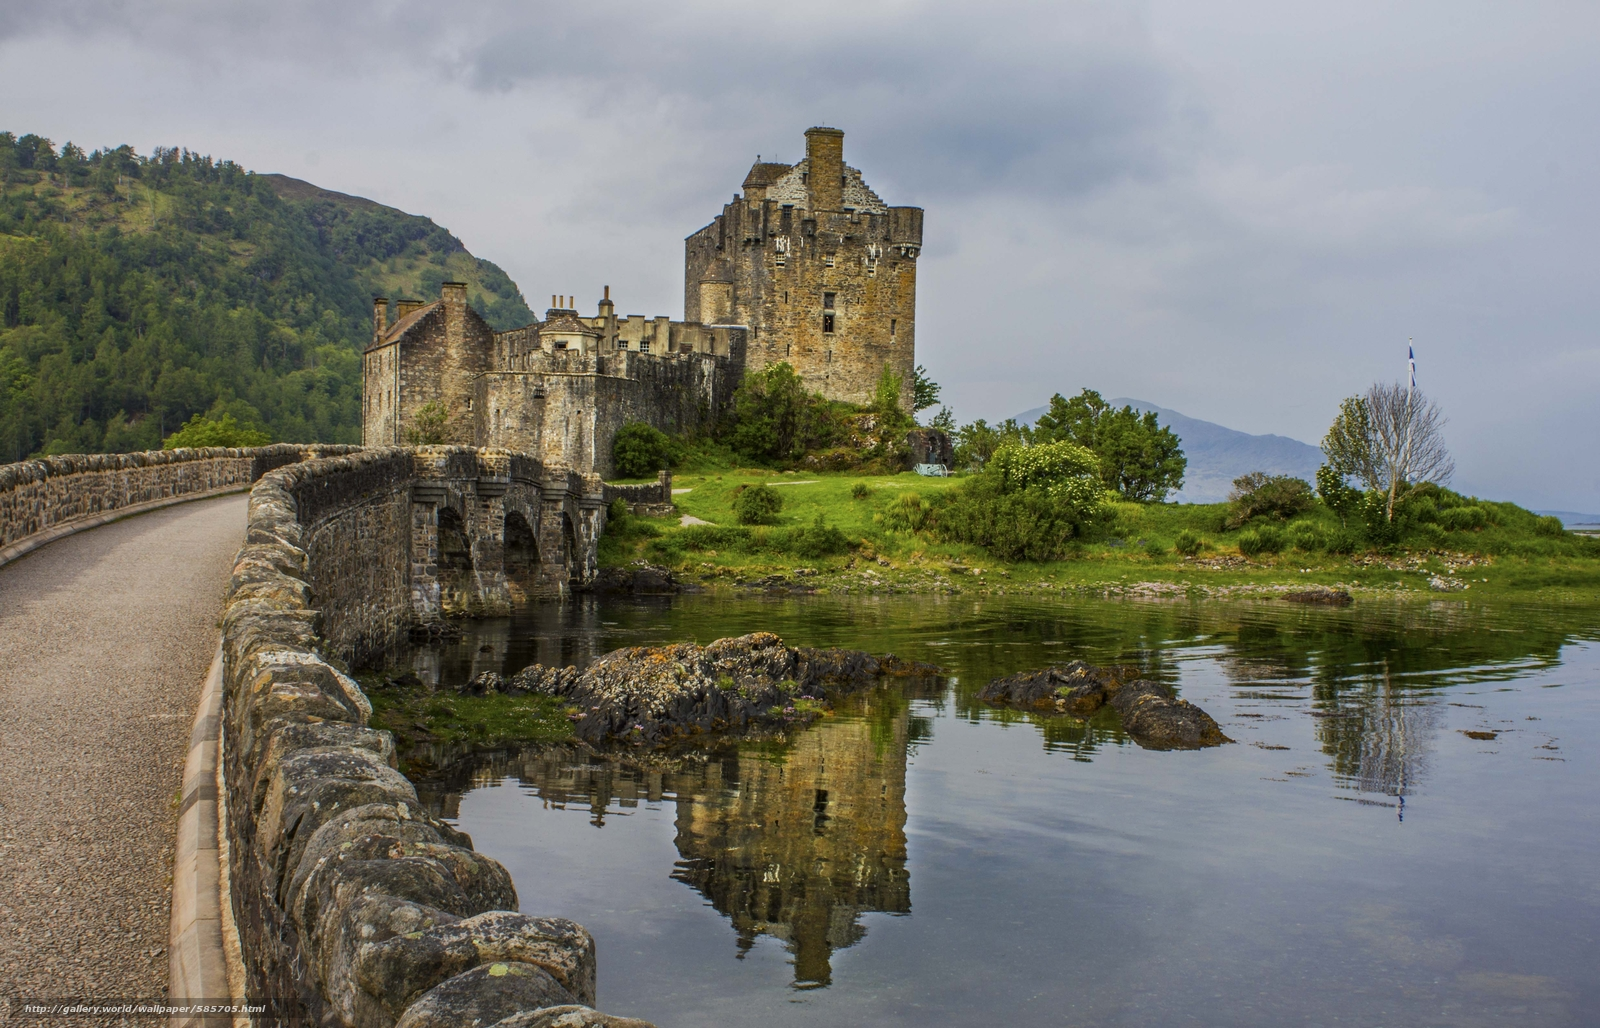 Download wallpaper castle Eilean Donan British Isles Scotland 1600x1028